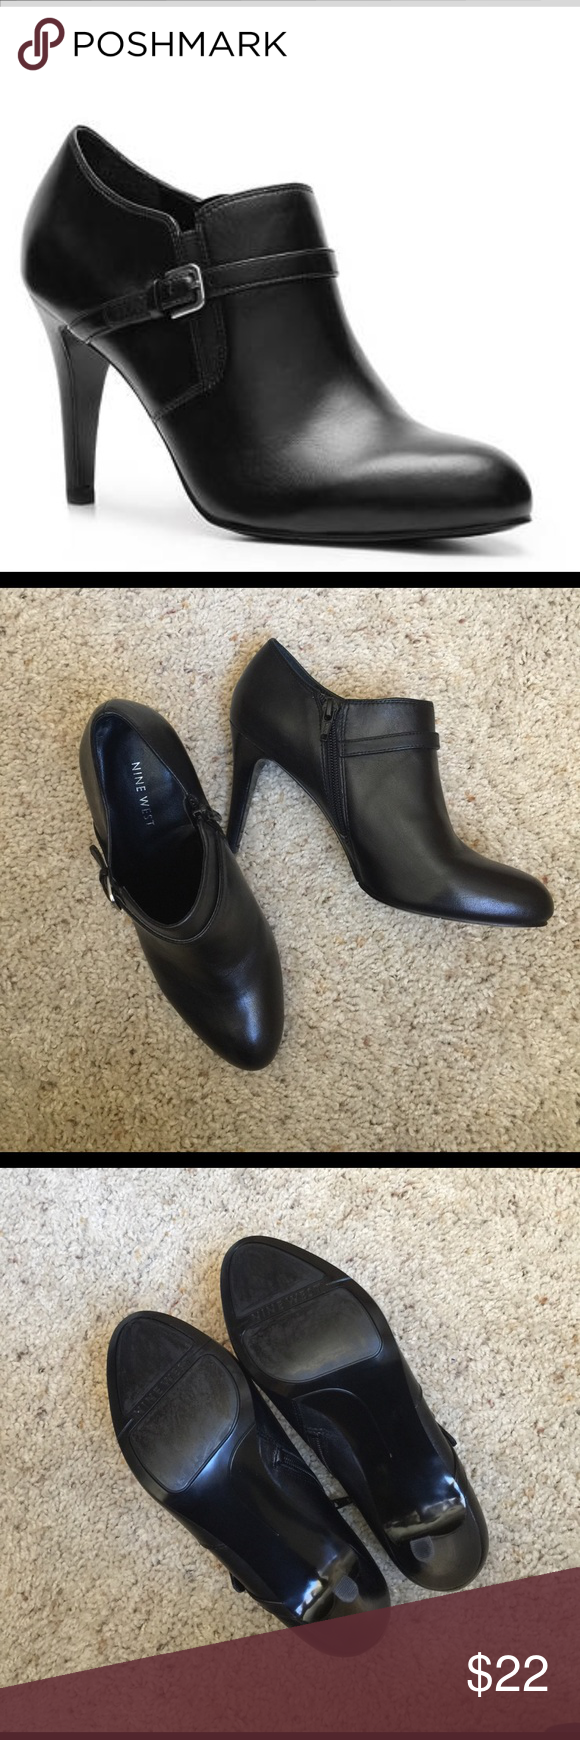 "NINE WEST METRA BOOTIE You'll look fierce in the Metra bootie by Nine West. Its sleek and sassy style will dress up your look in no time*Leather upper*Strap and buckle detail*Inside zipper closure*Almond toe* 3½"" covered heel, size 7 Nine West Shoes Ankle Boots & Booties"